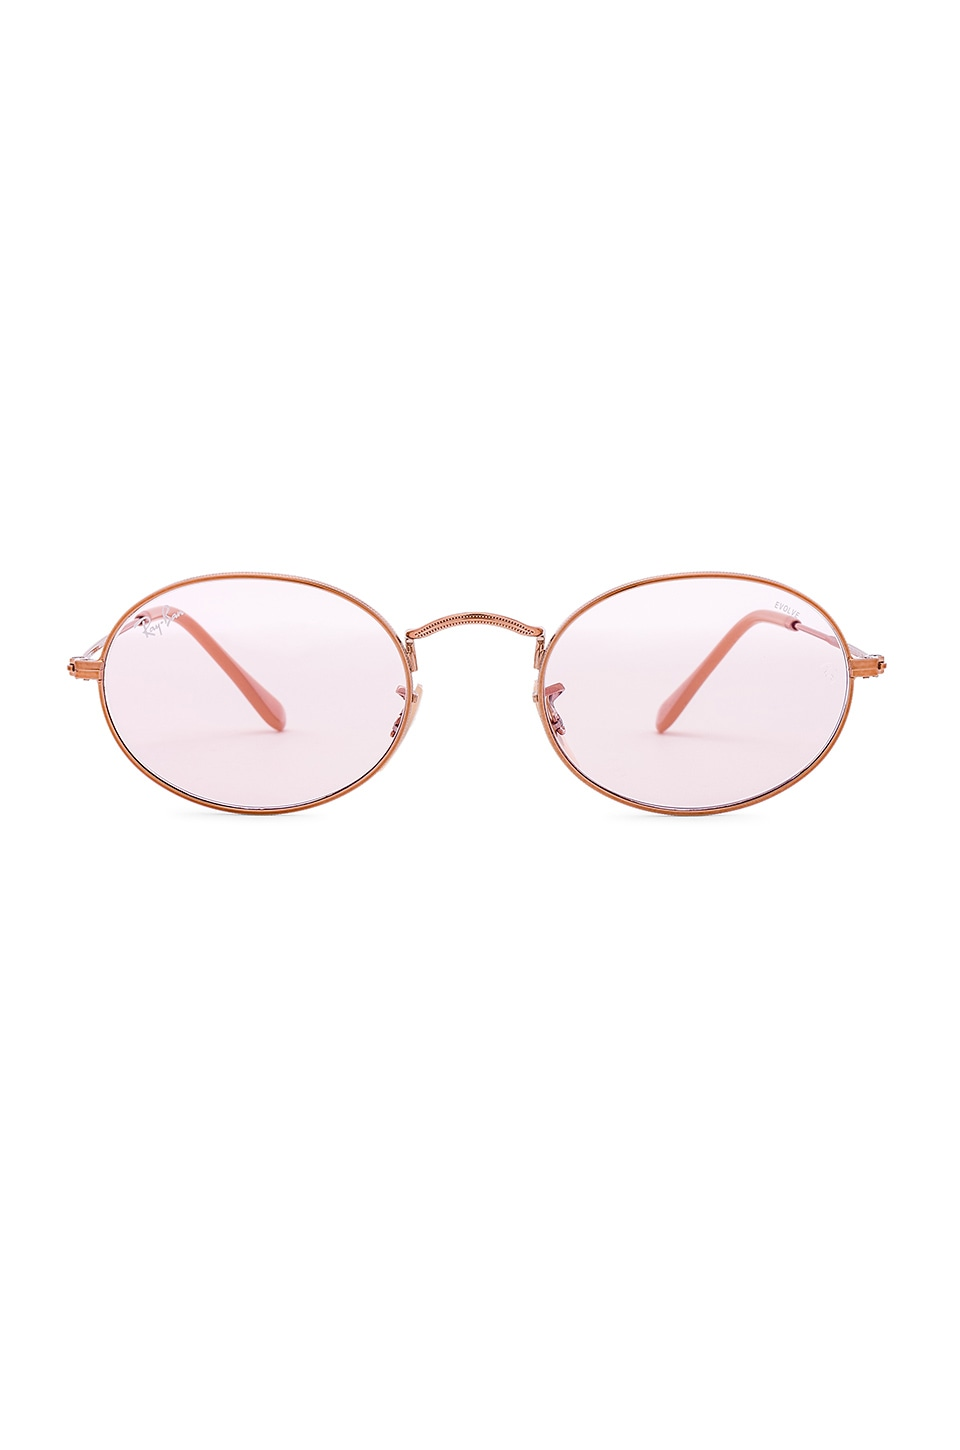 Ray-Ban Evolve Oval Flat in Copper & Light Pink